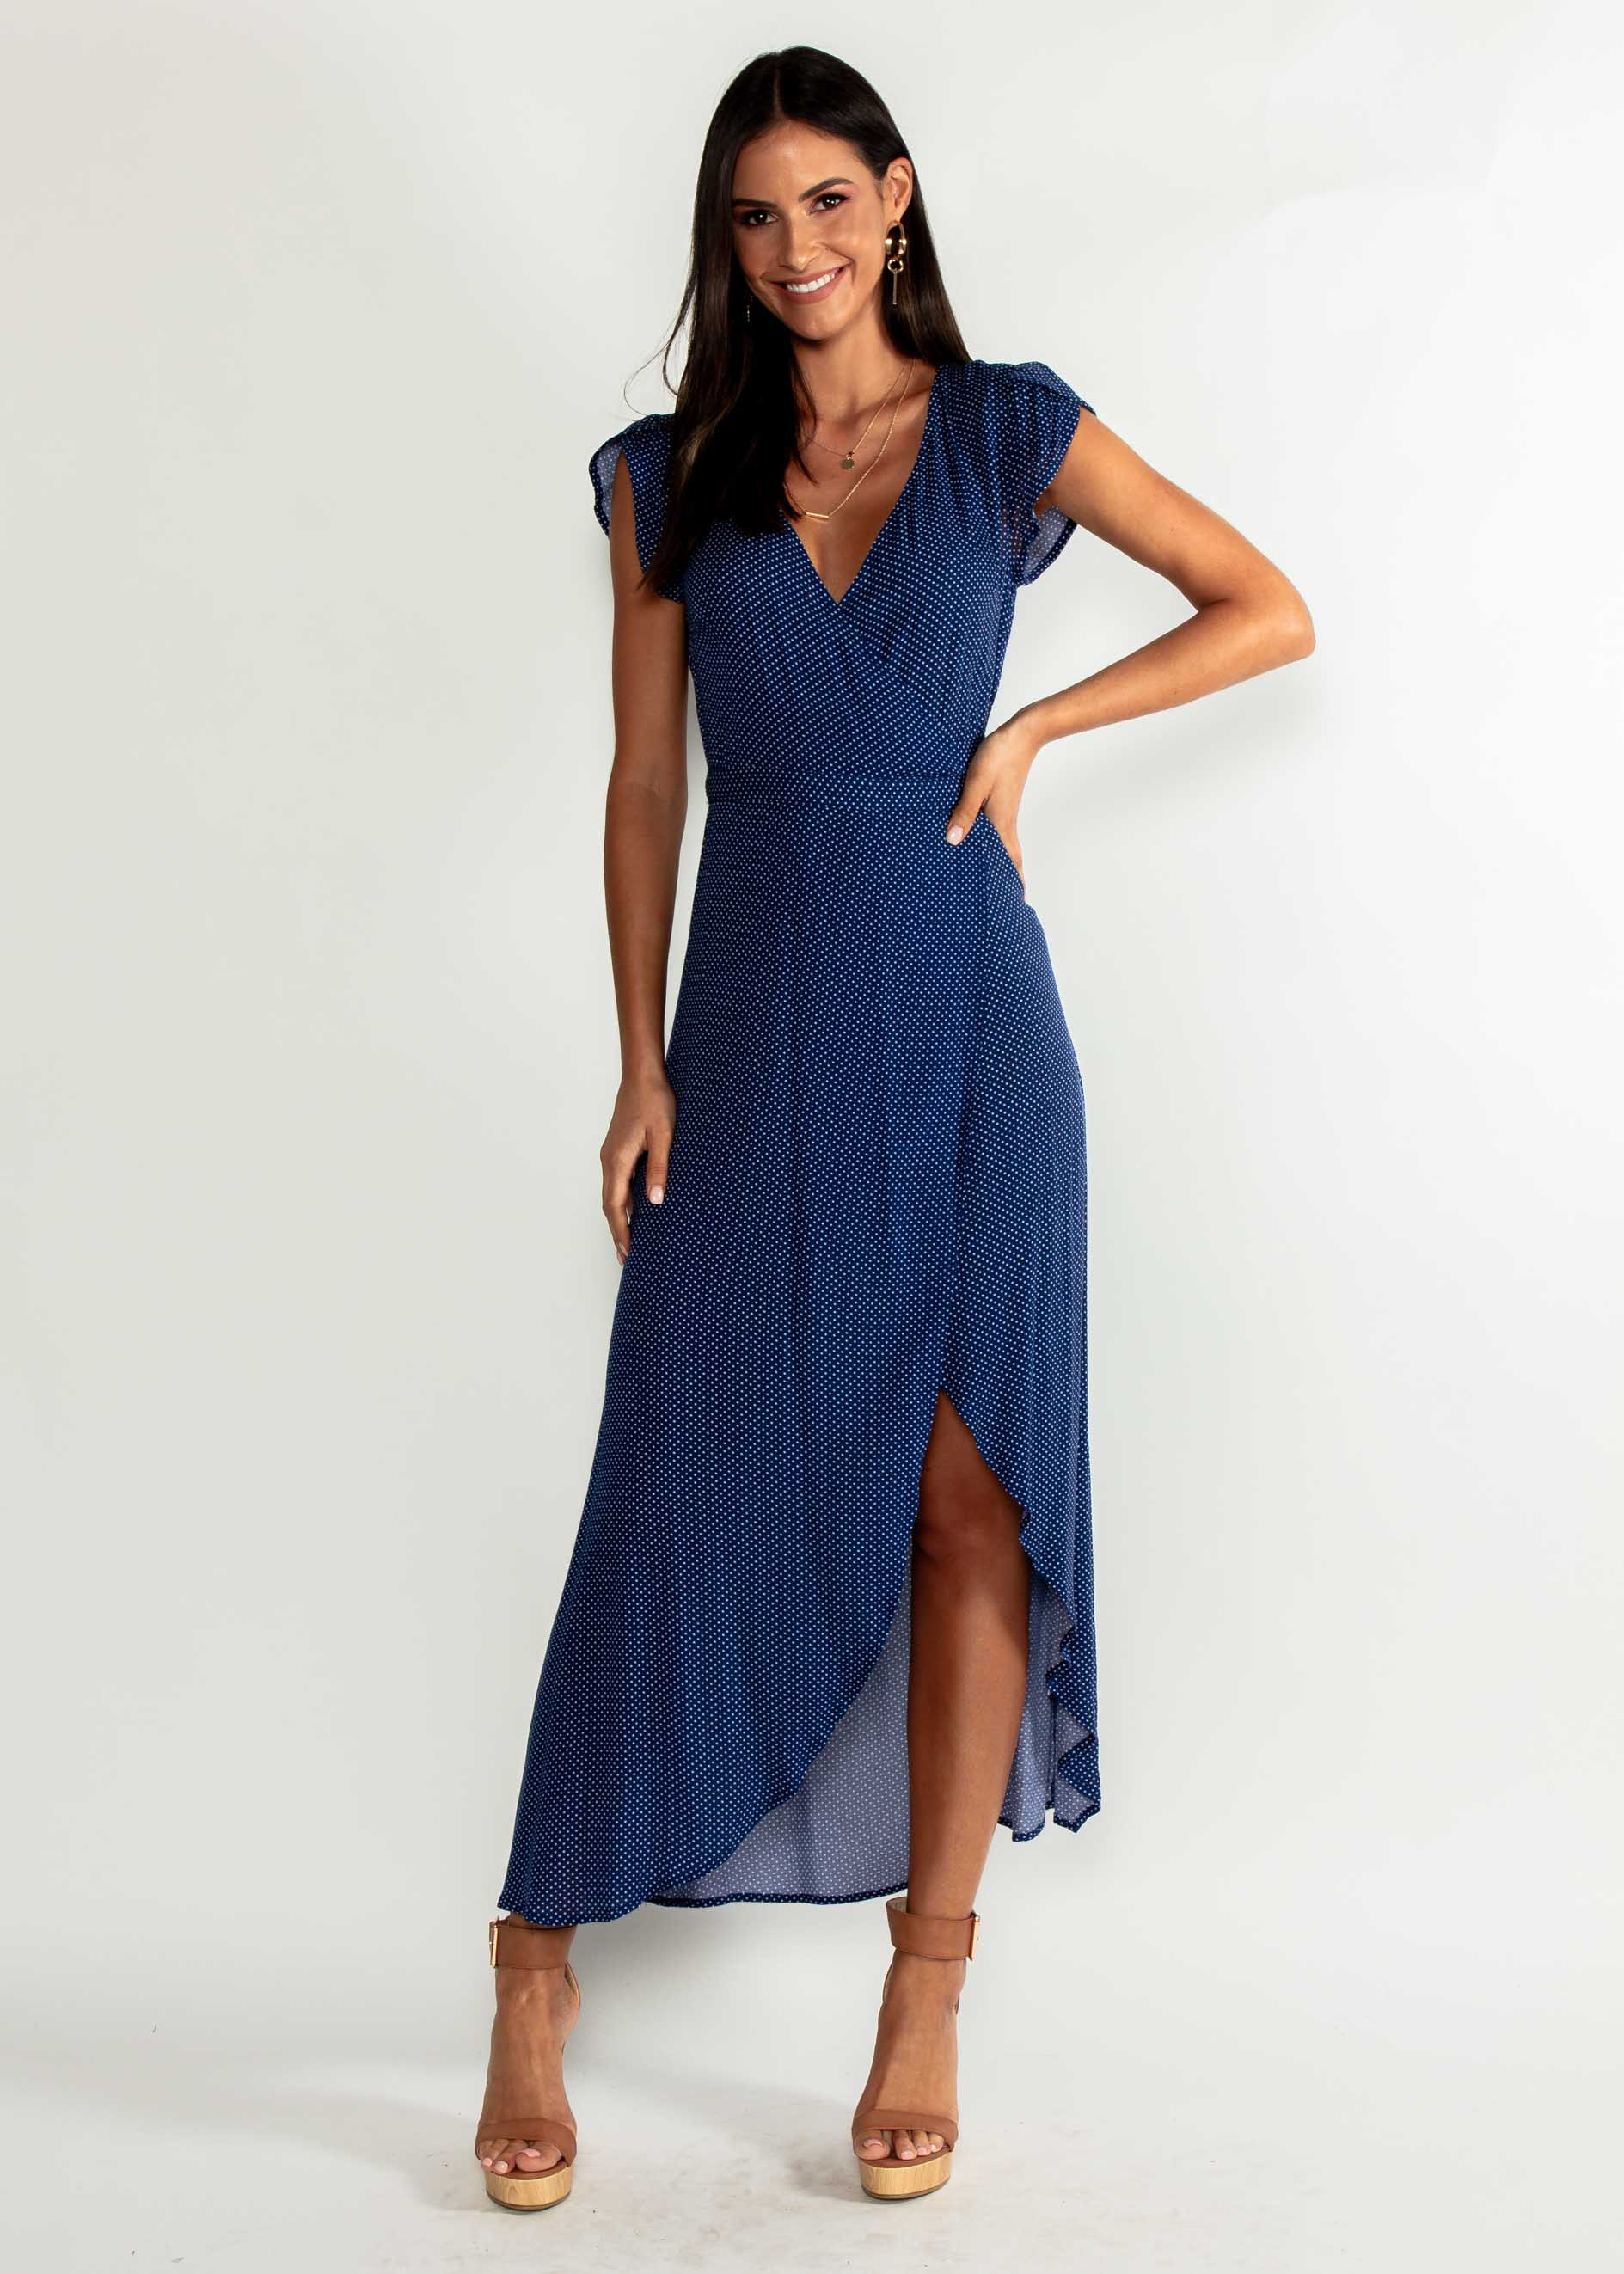 Cortez Maxi Wrap Dress - Navy Polka – Gingham and Heels 7fd12f524